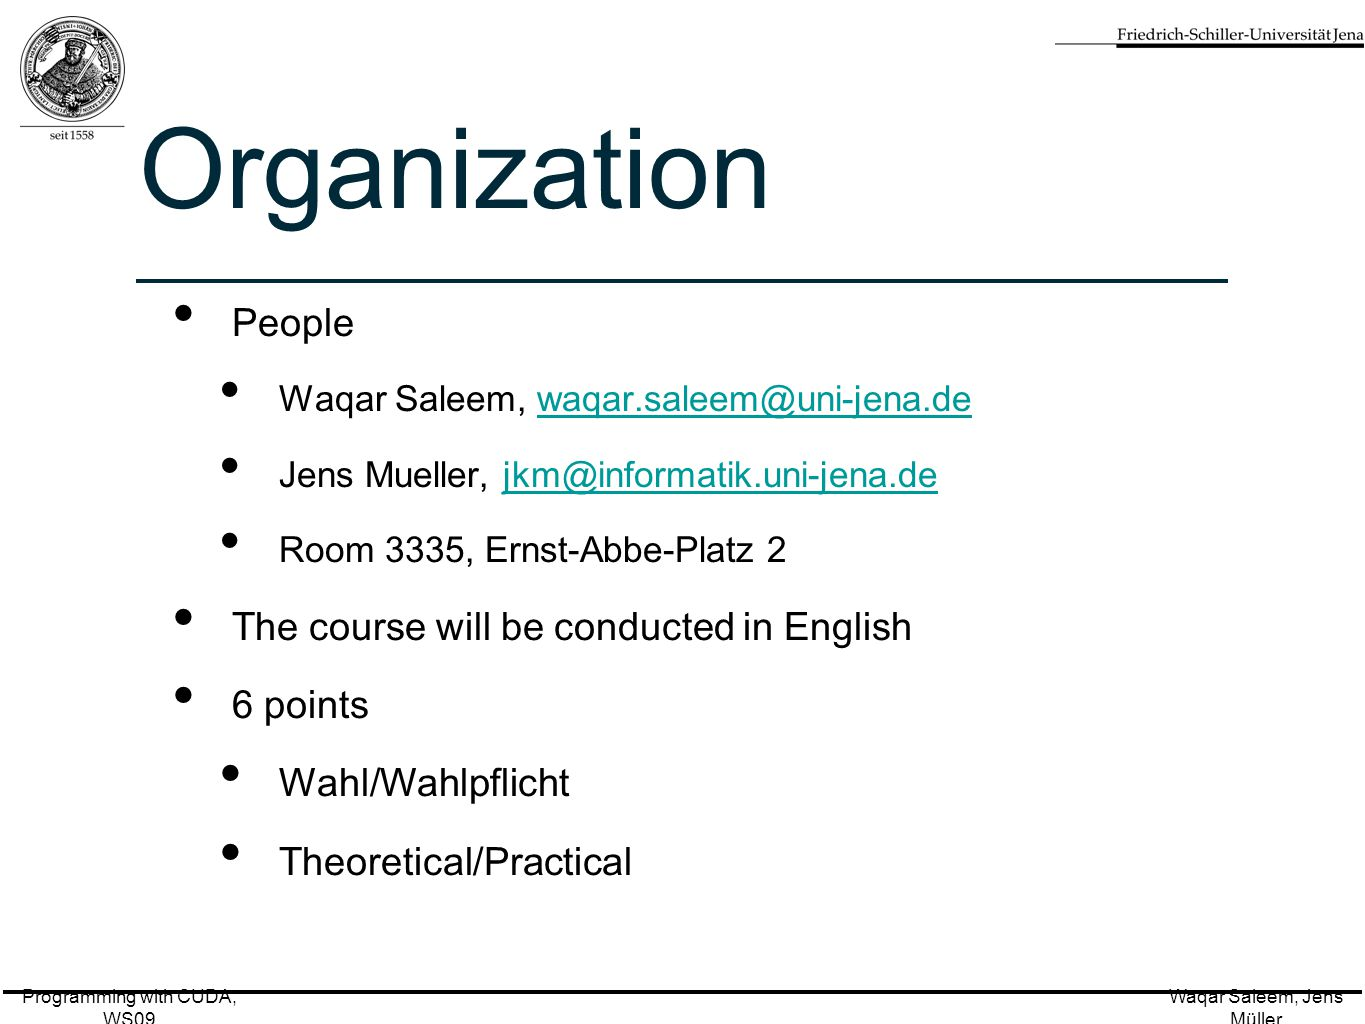 Programming with CUDA, WS09 Waqar Saleem, Jens Müller Organization People Waqar Saleem, Jens Mueller, Room 3335, Ernst-Abbe-Platz 2 The course will be conducted in English 6 points Wahl/Wahlpflicht Theoretical/Practical